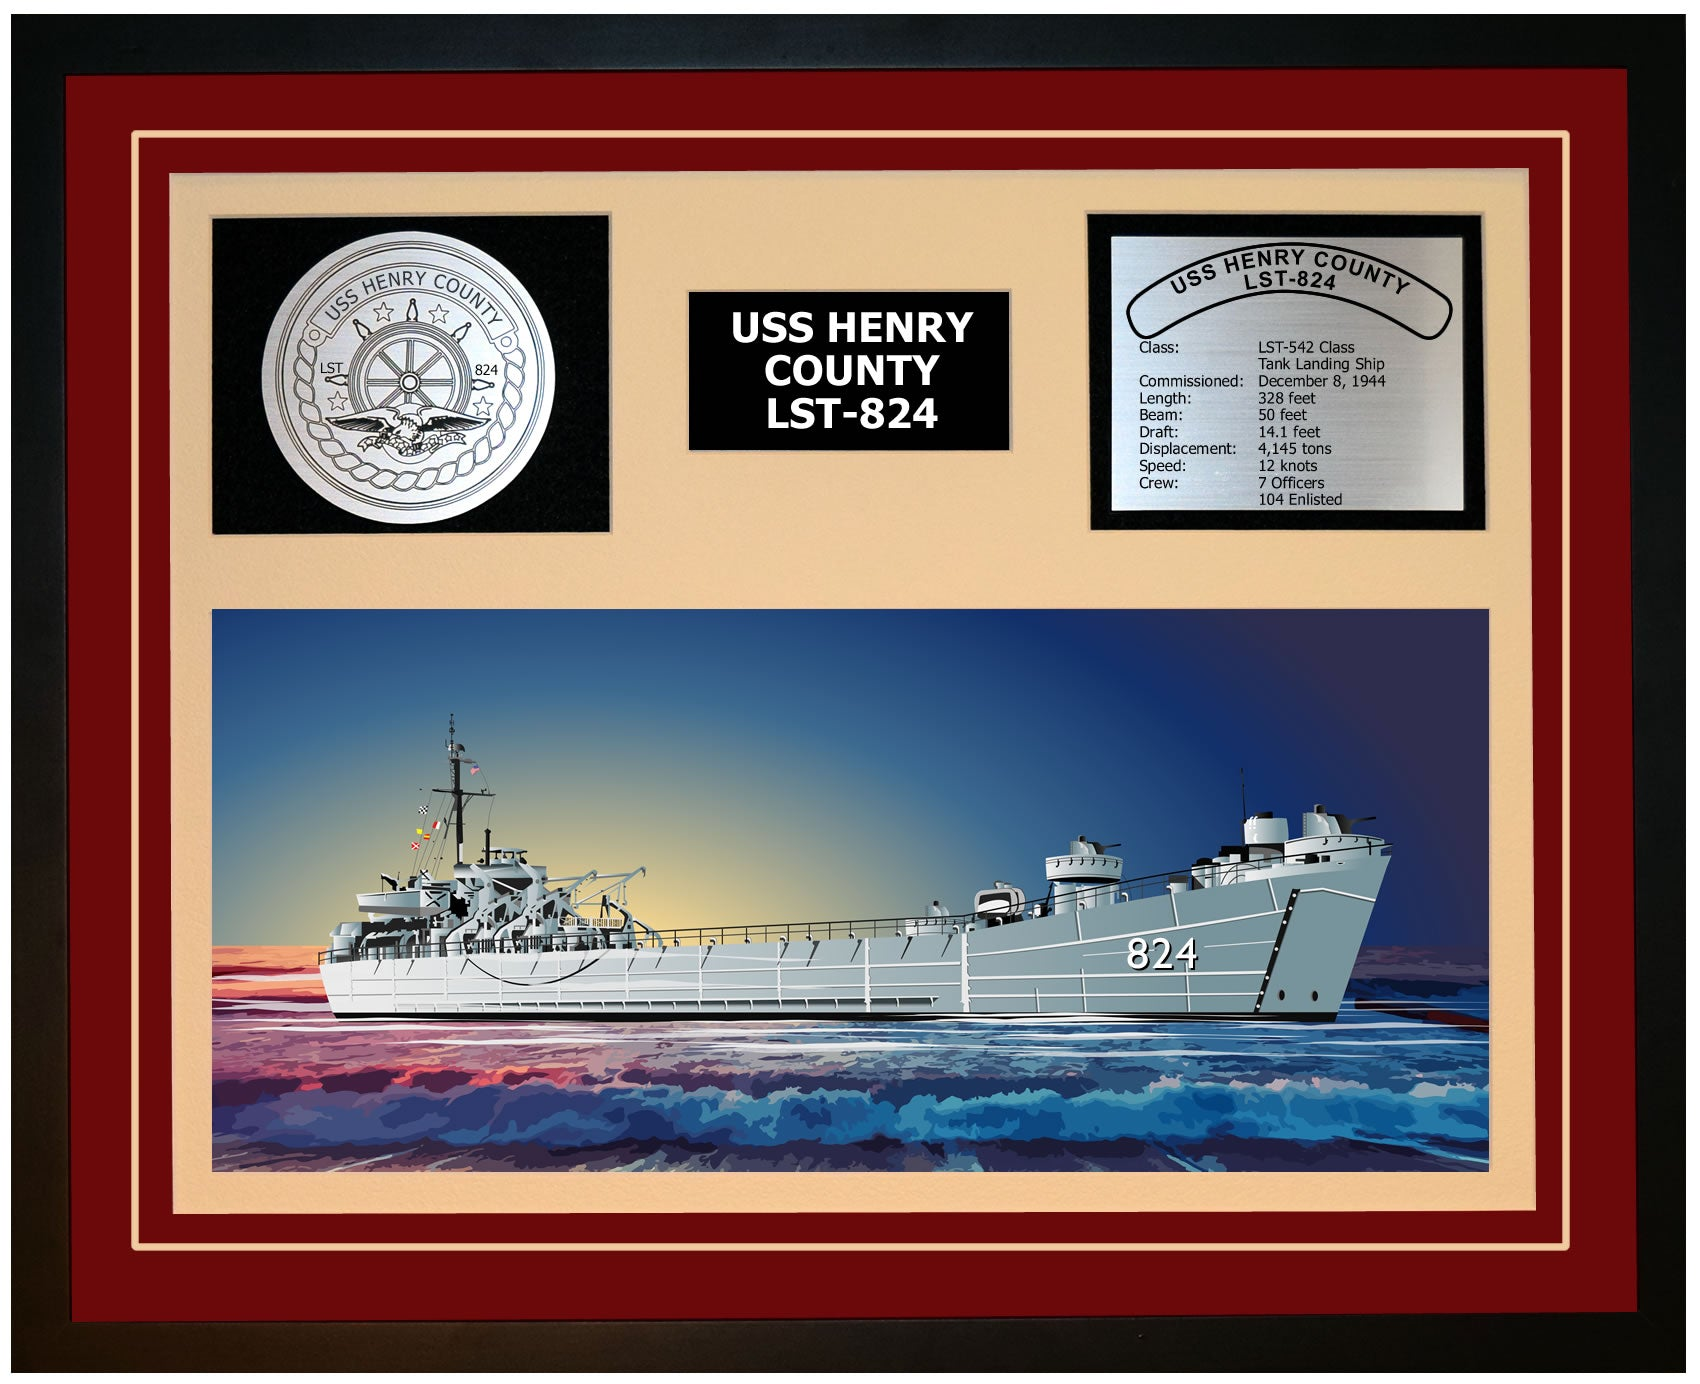 USS HENRY COUNTY LST-824 Framed Navy Ship Display Burgundy